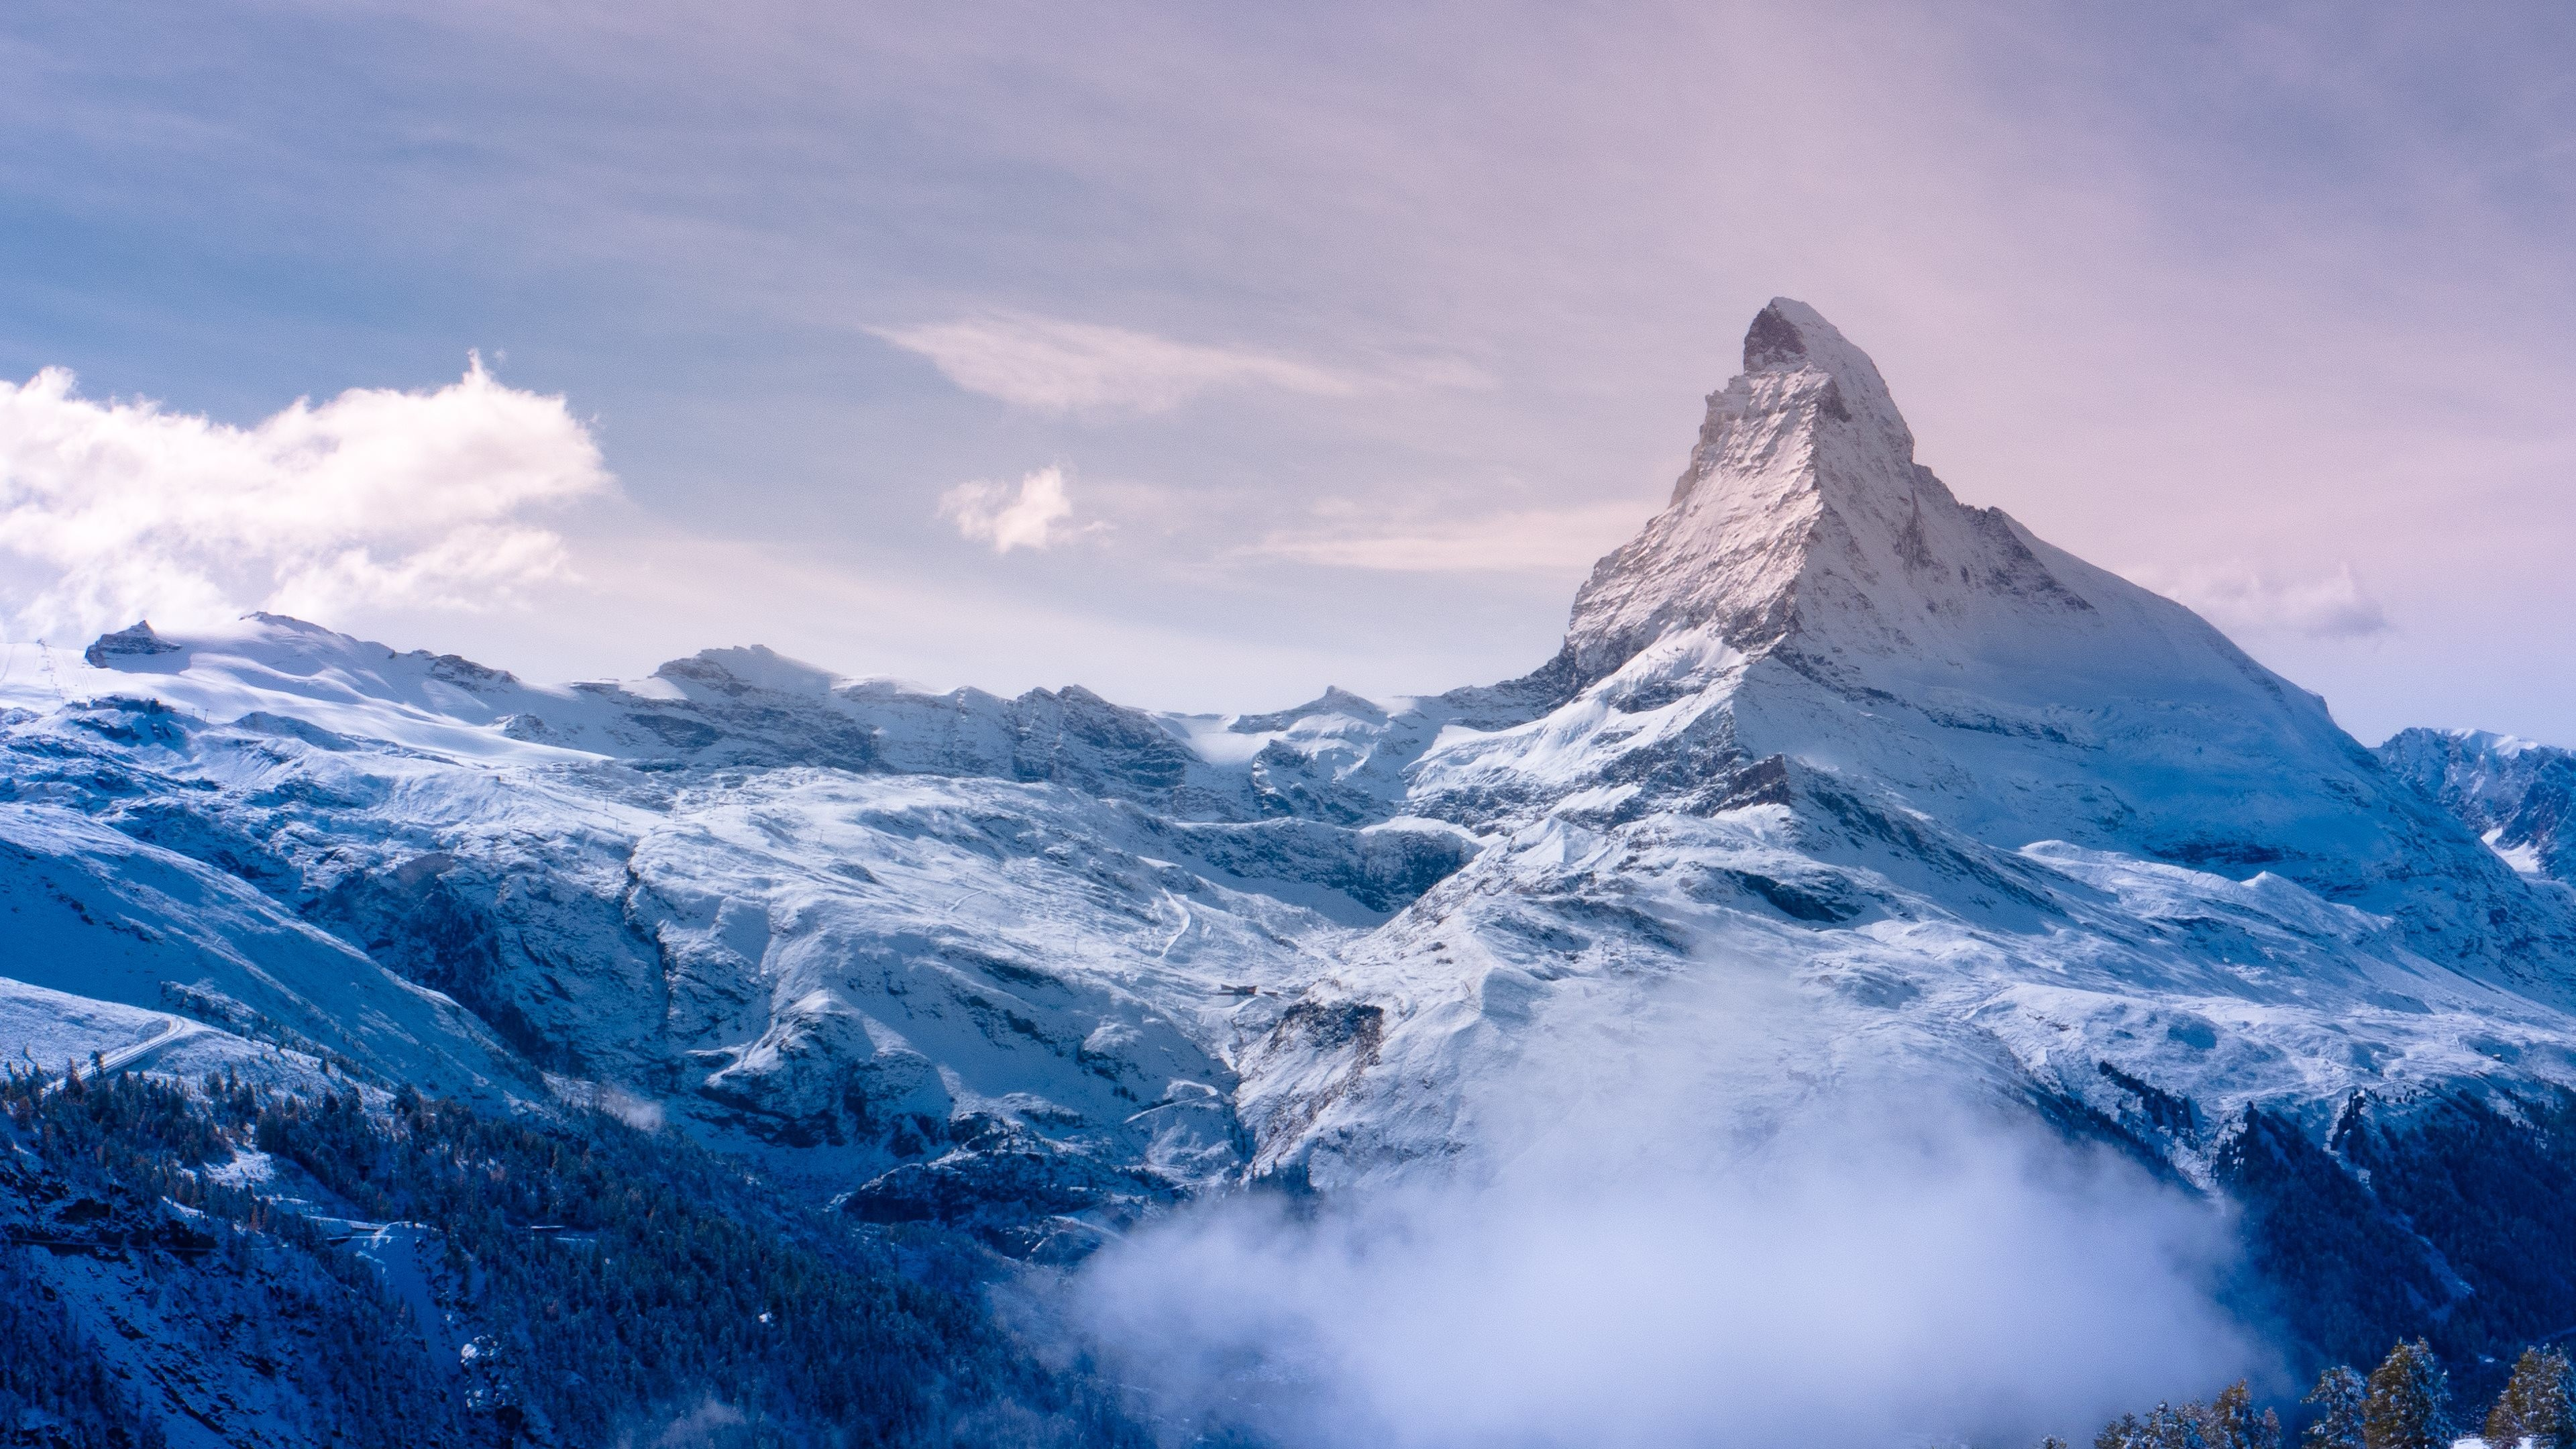 Res: 3840x2160, Swiss Alps Wallpapers · 4K HD Desktop Backgrounds Phone Images